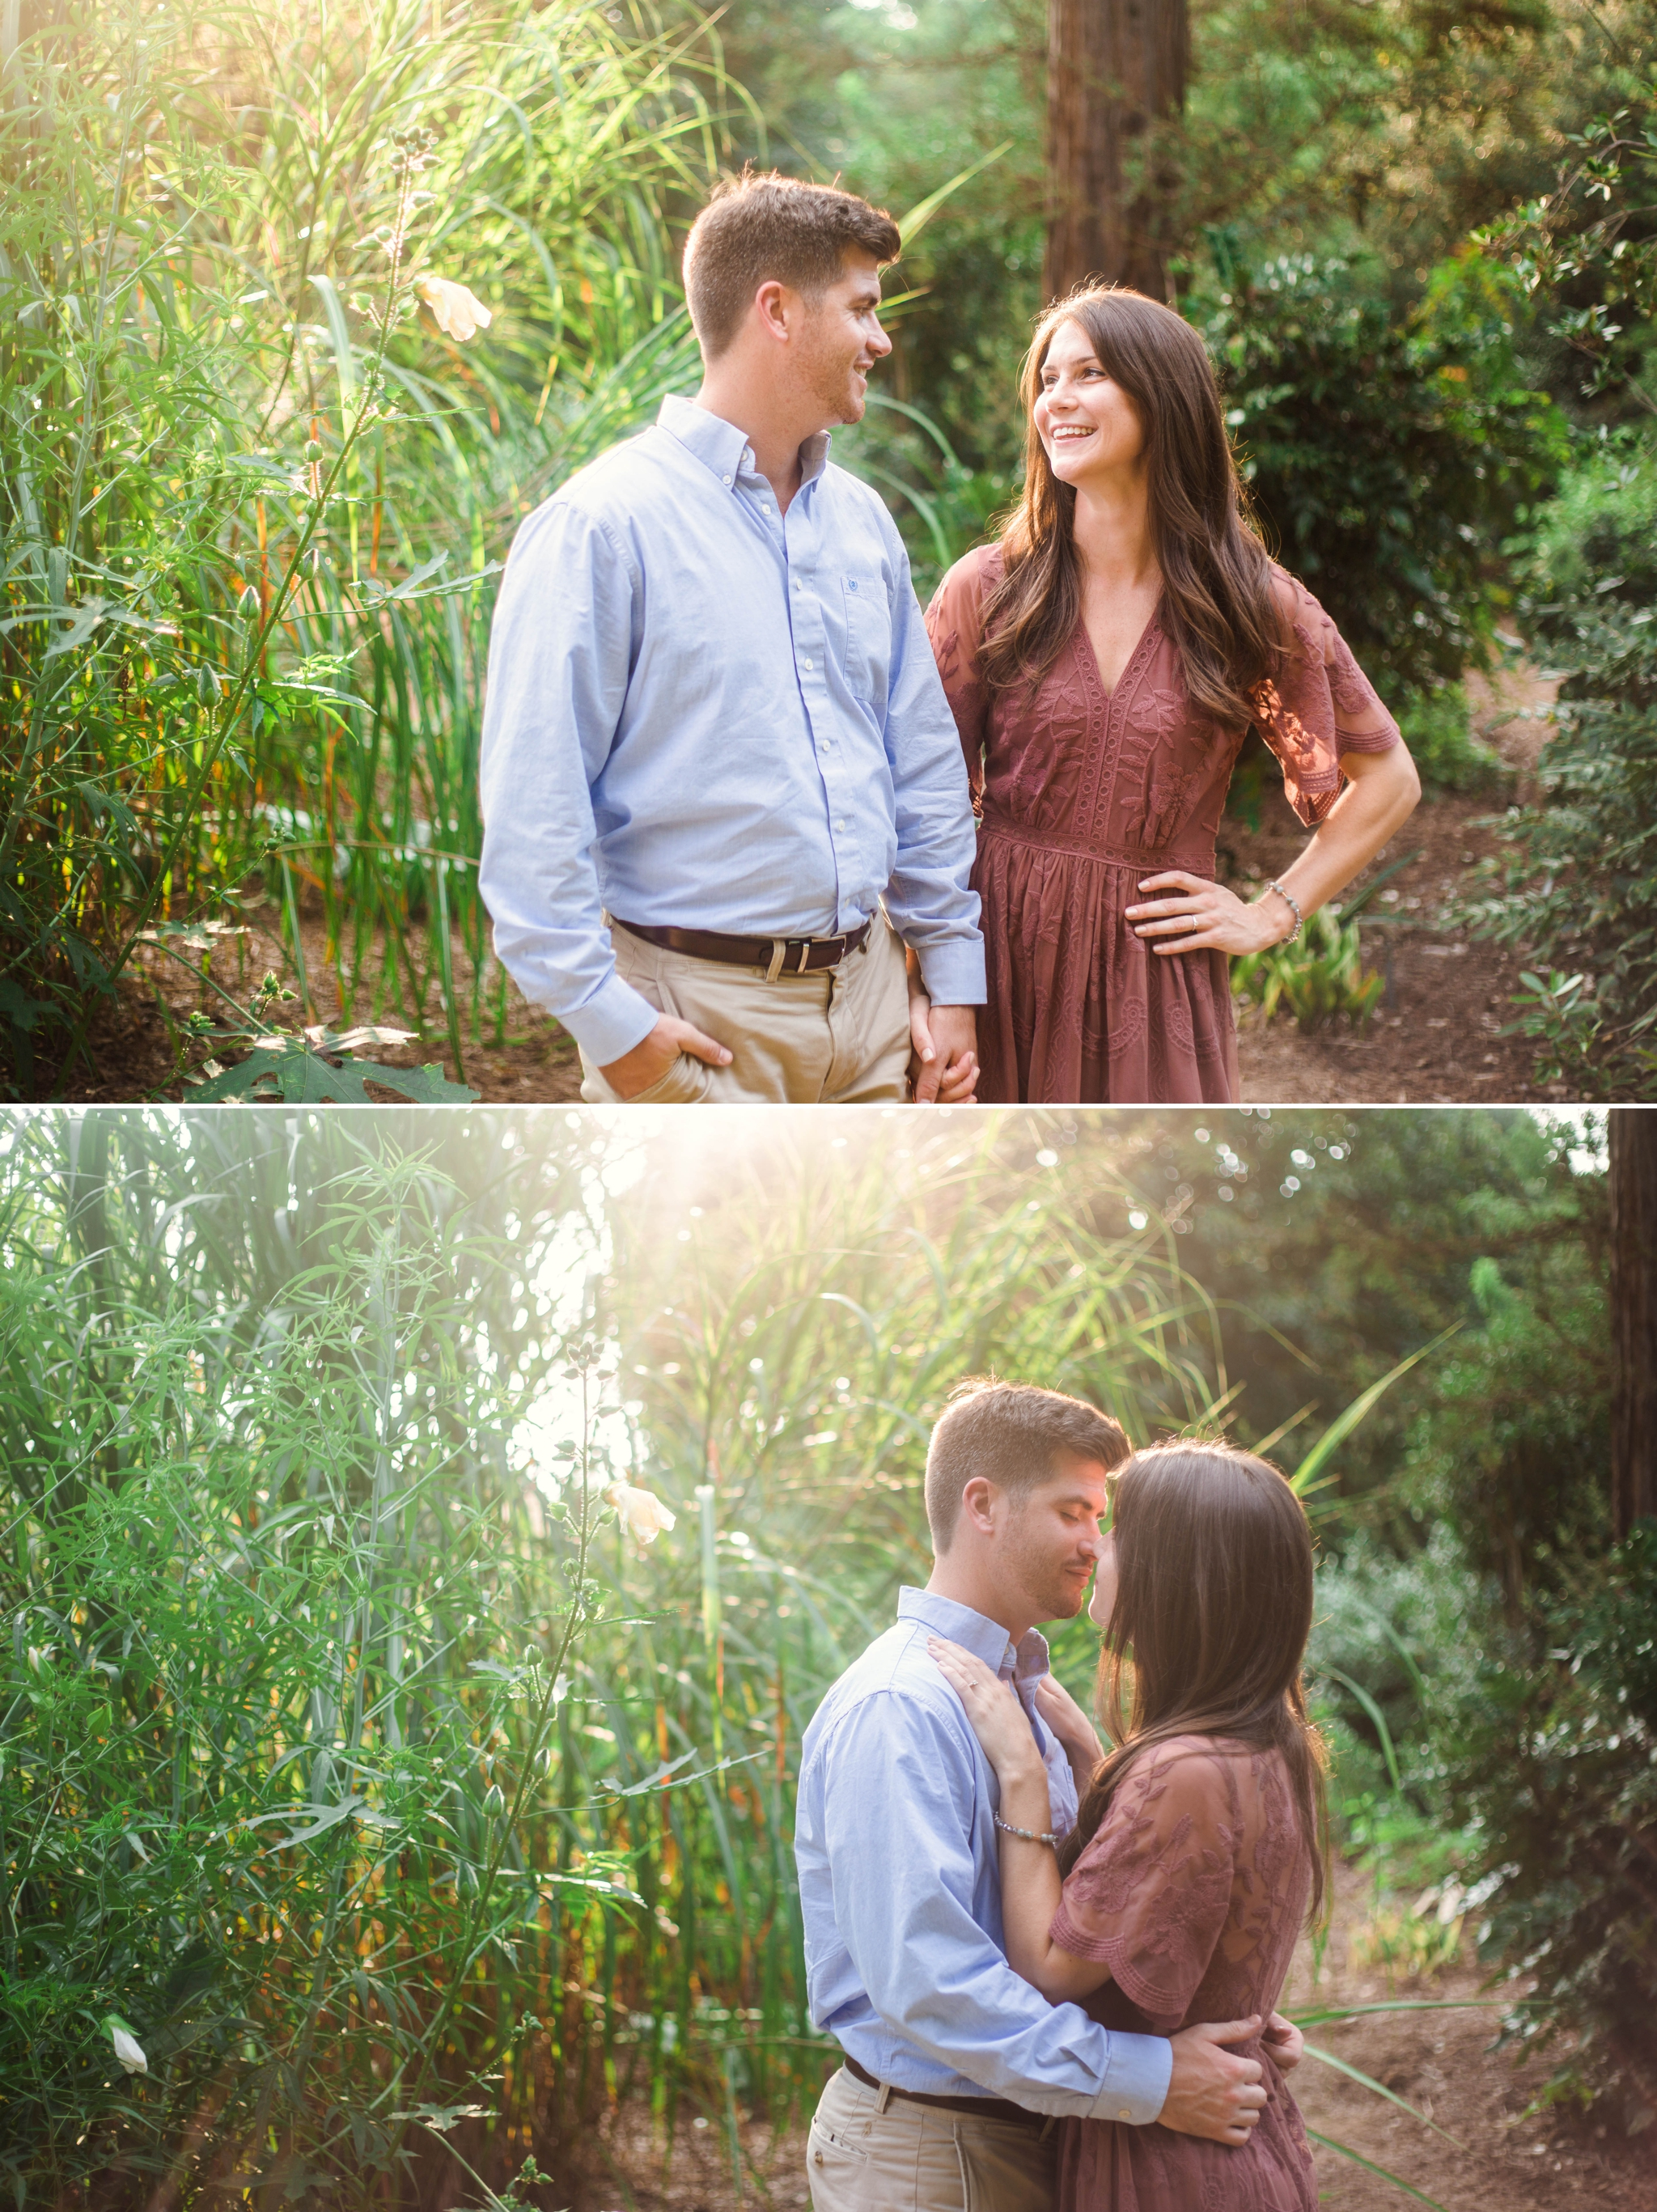 Golden Hour Engagement Aryn + Tyler -  Photography Session at the JC Raulston Arboretum - Raleigh Wedding Photographer